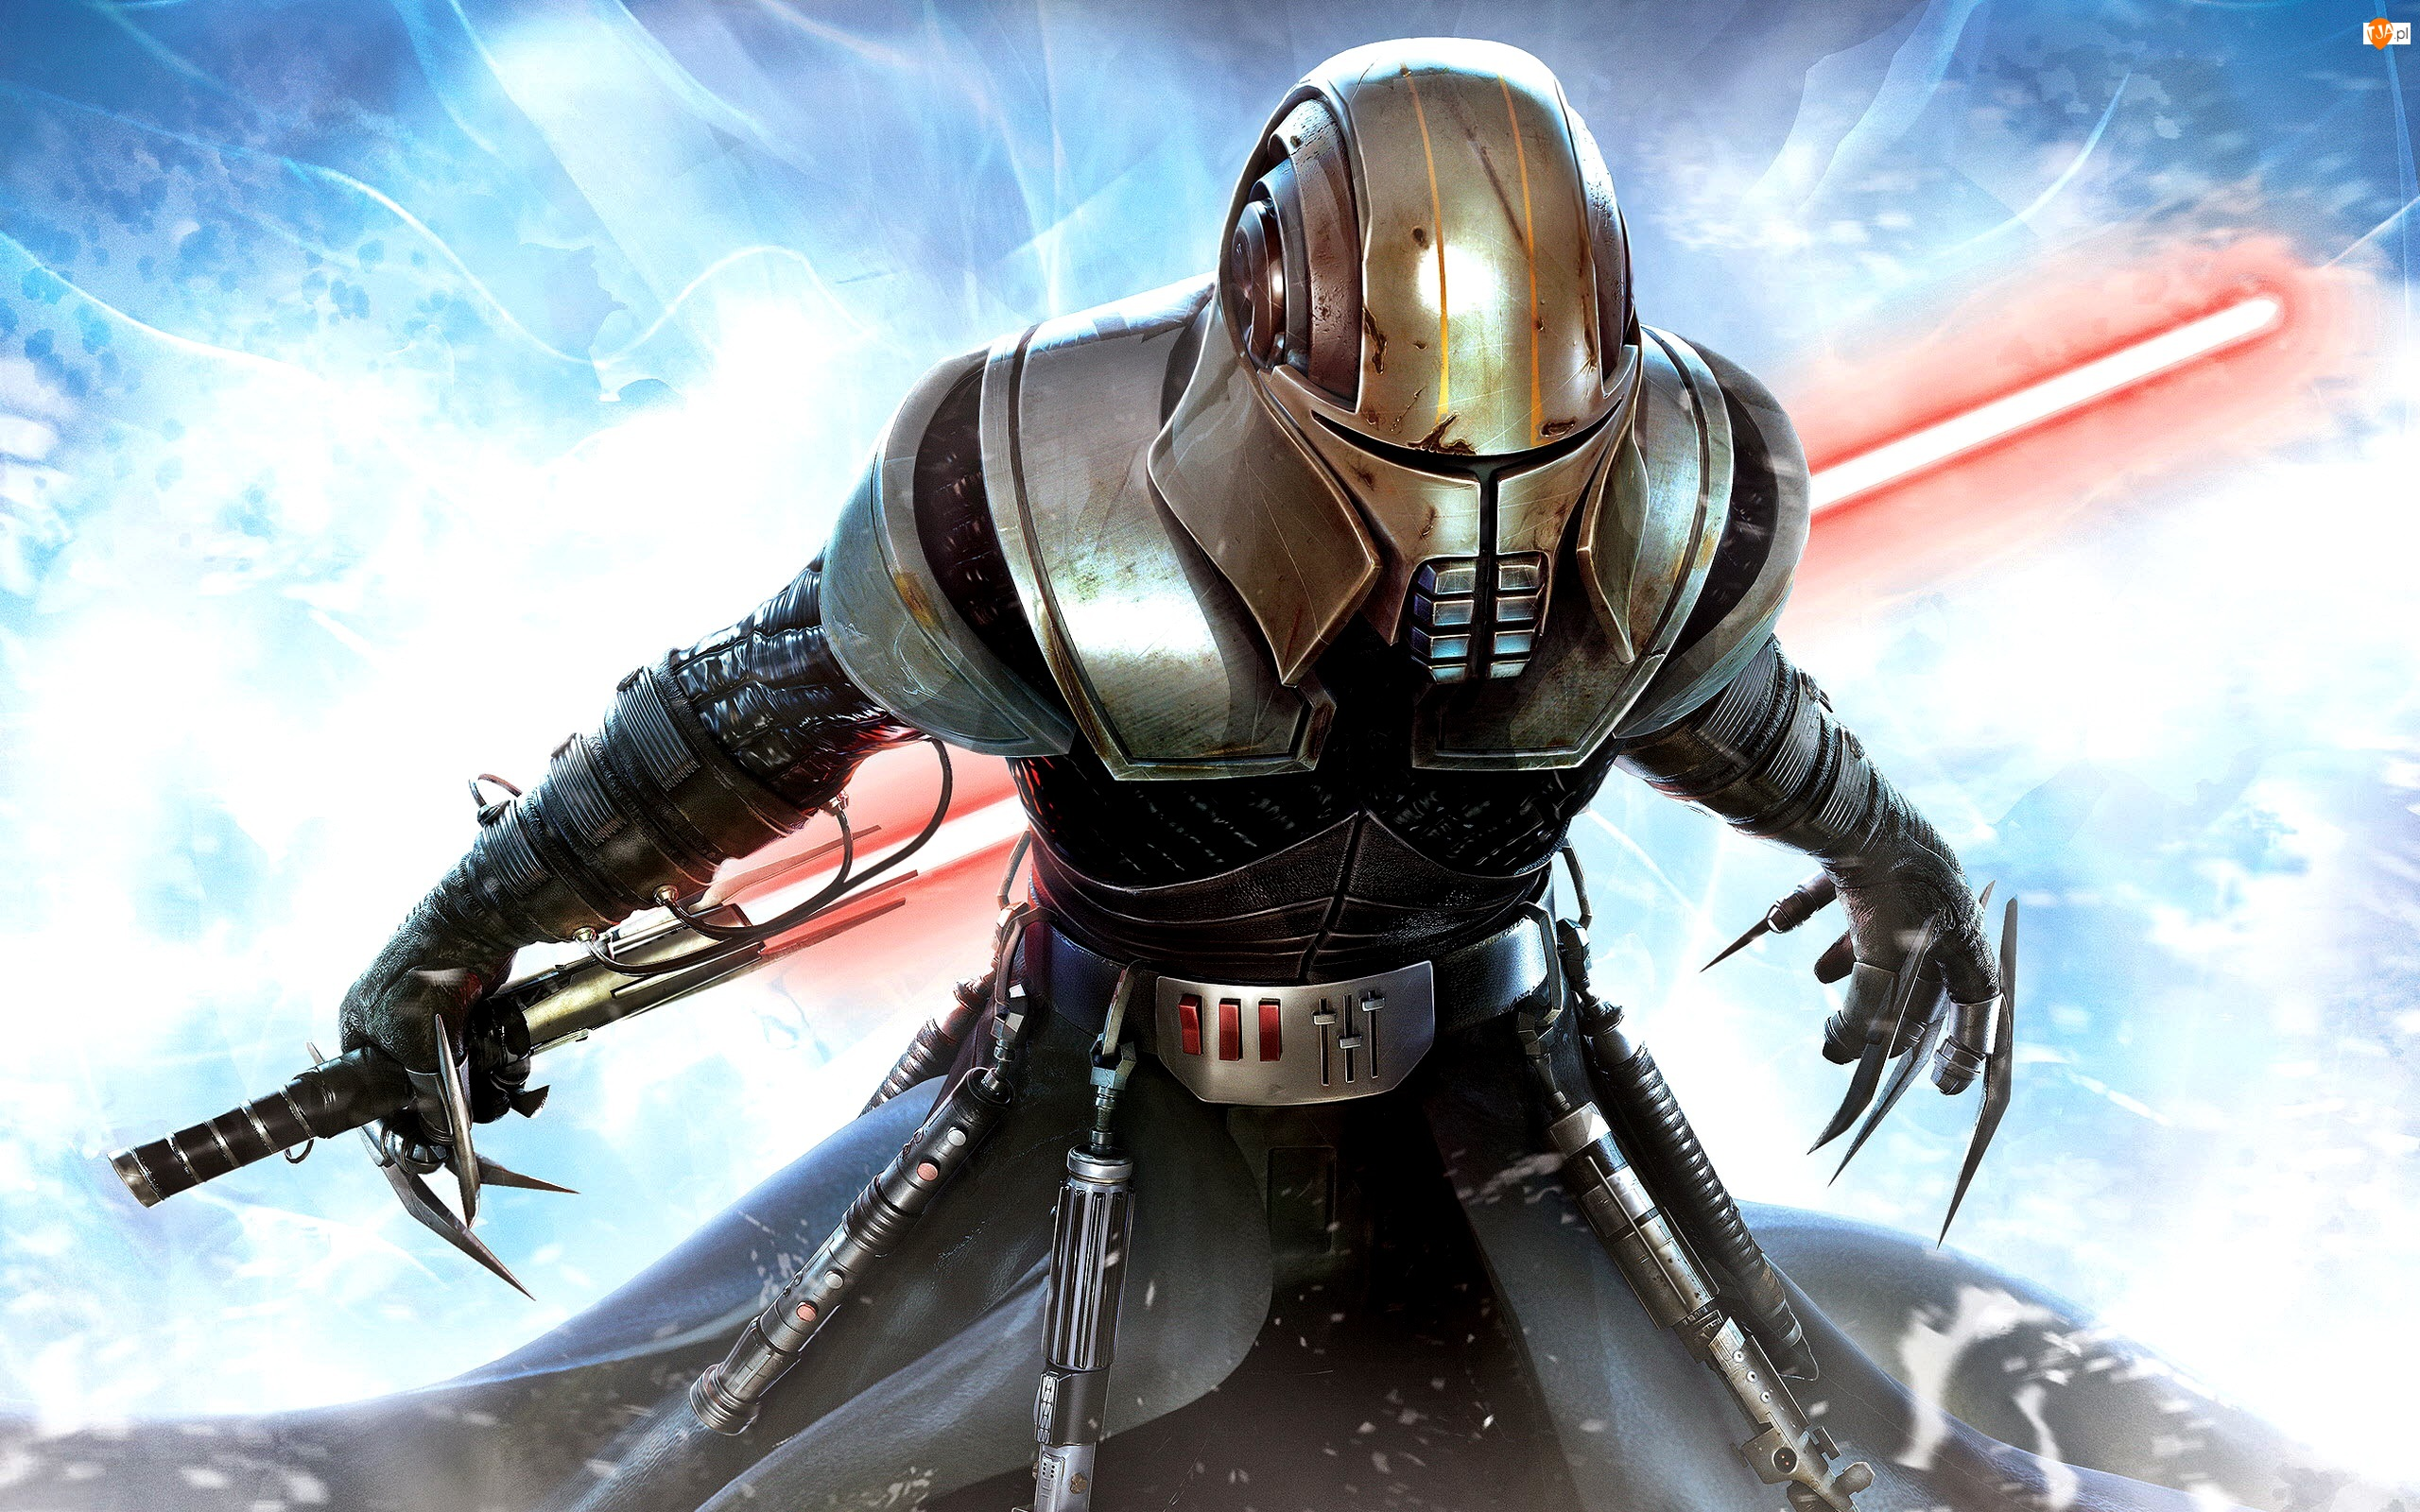 The Force Unleashed, Star Wars